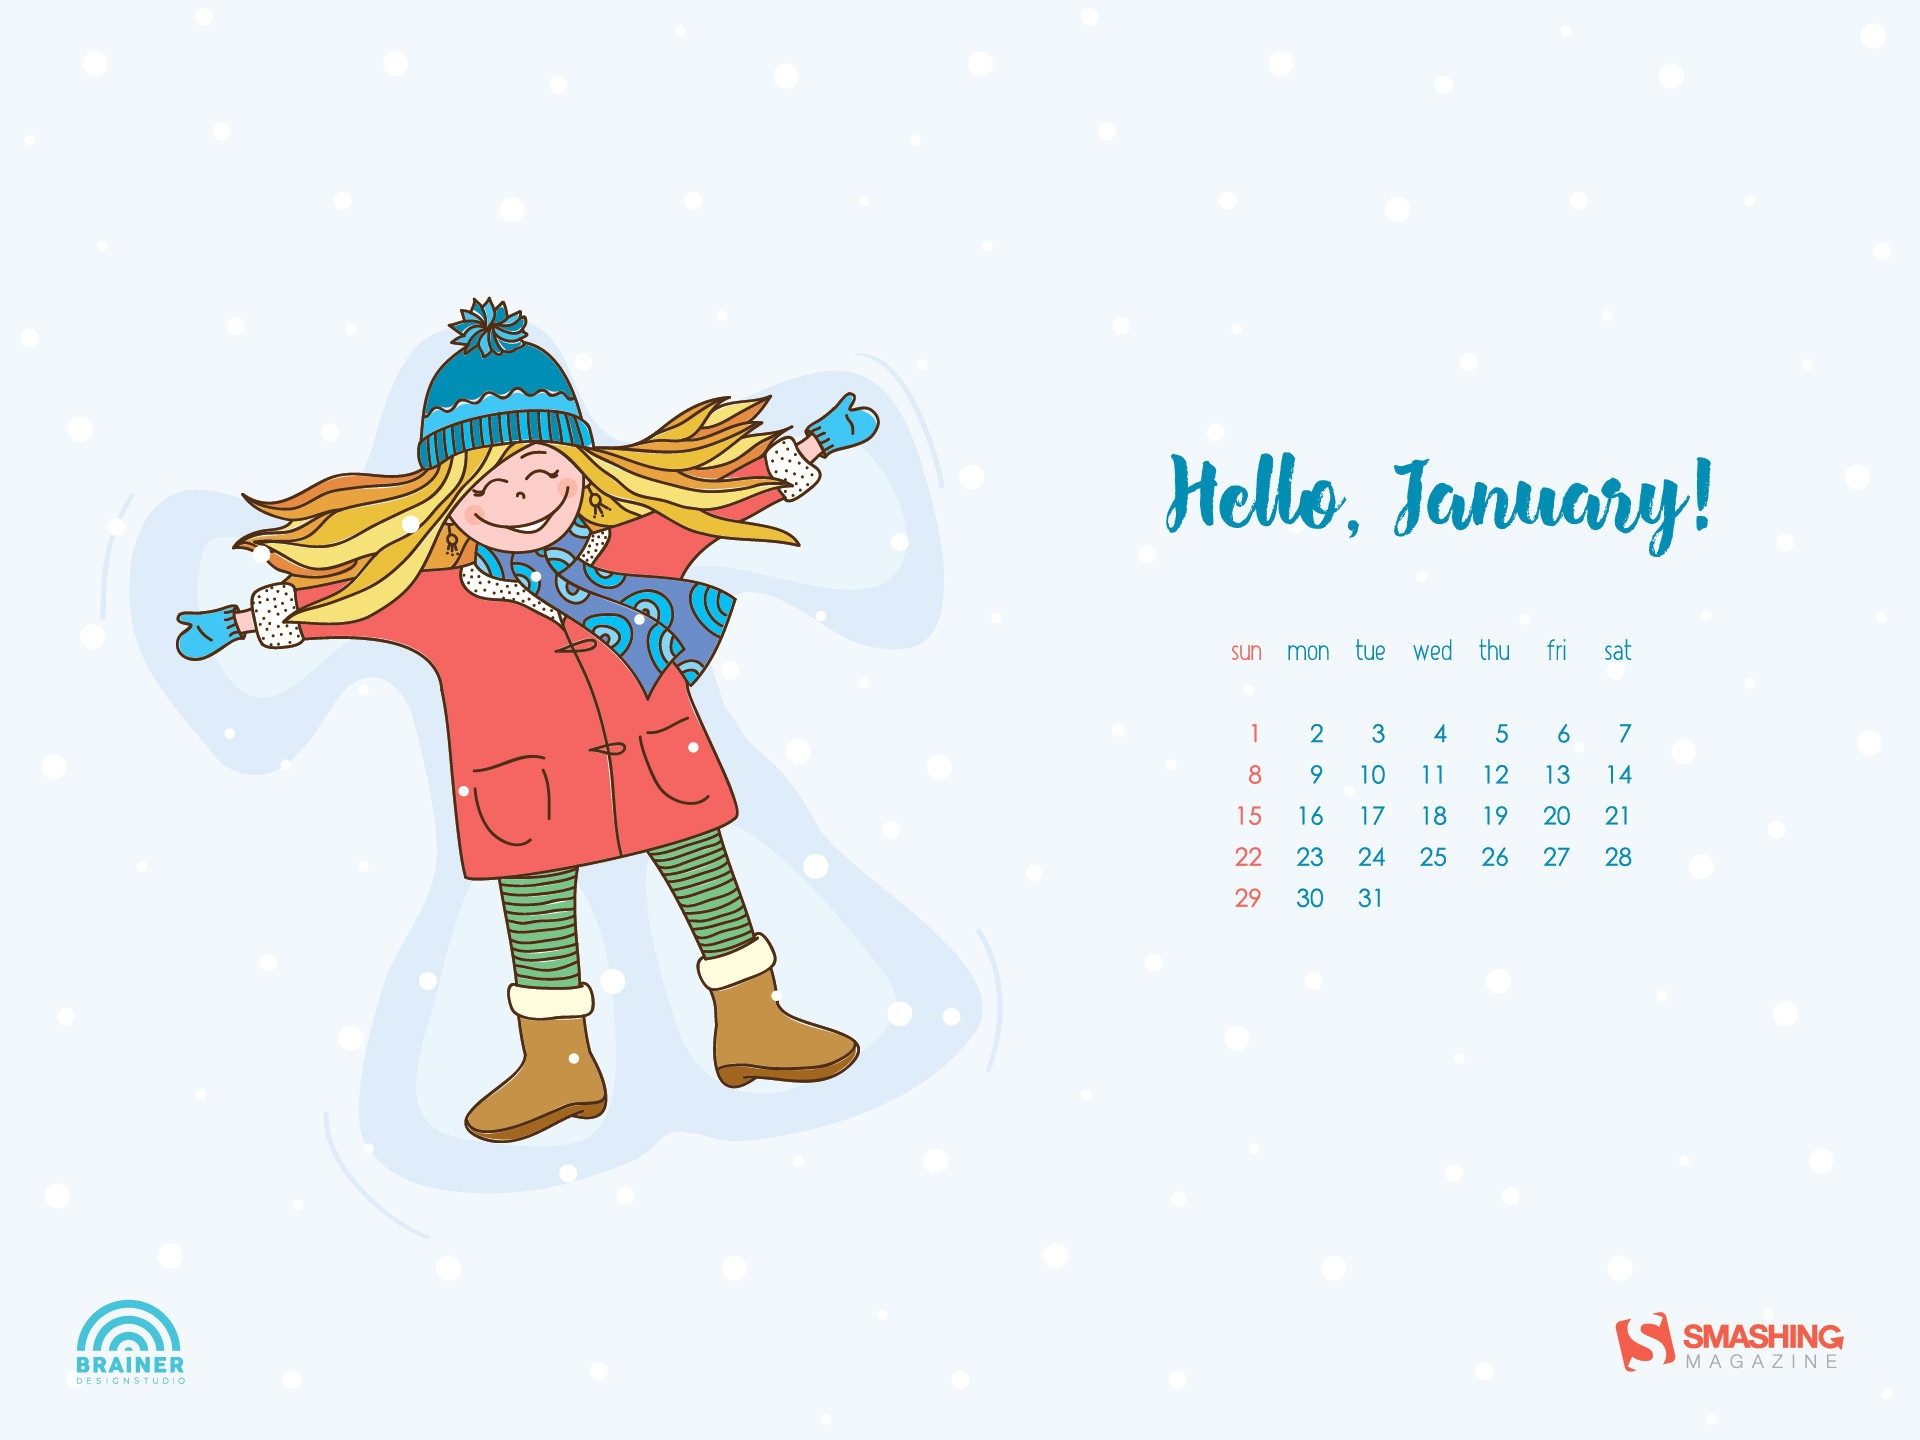 january wallpapers 70 background pictures::January 2019 Desktop Calendar Wallpaper